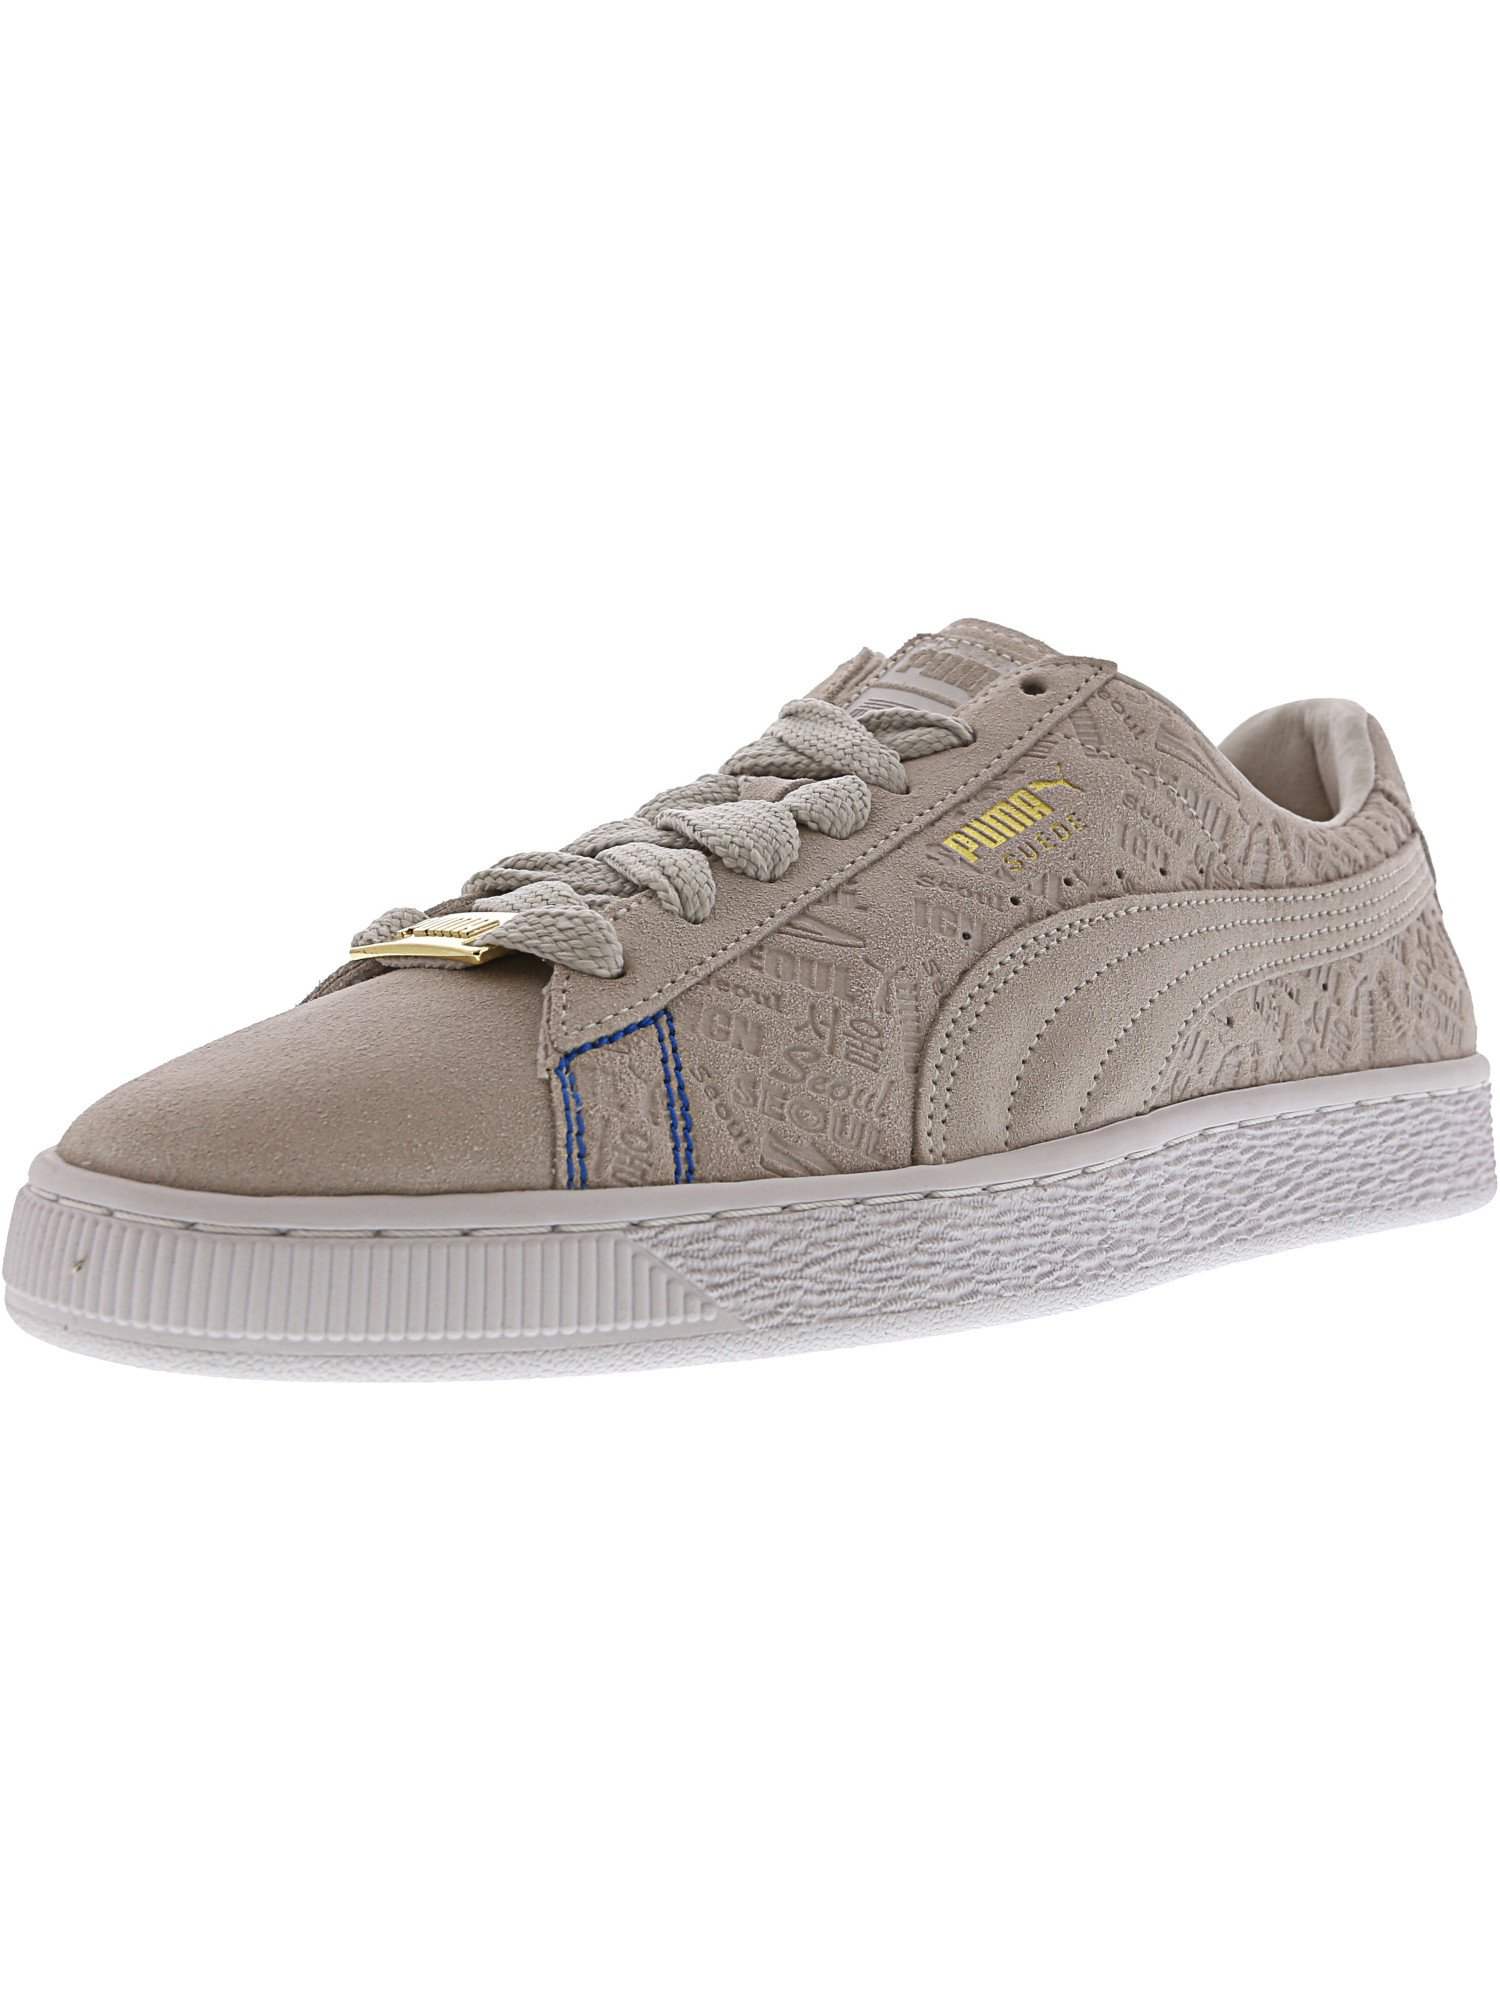 Ankle-High Fashion Sneaker Puma Men/'s Suede Classic